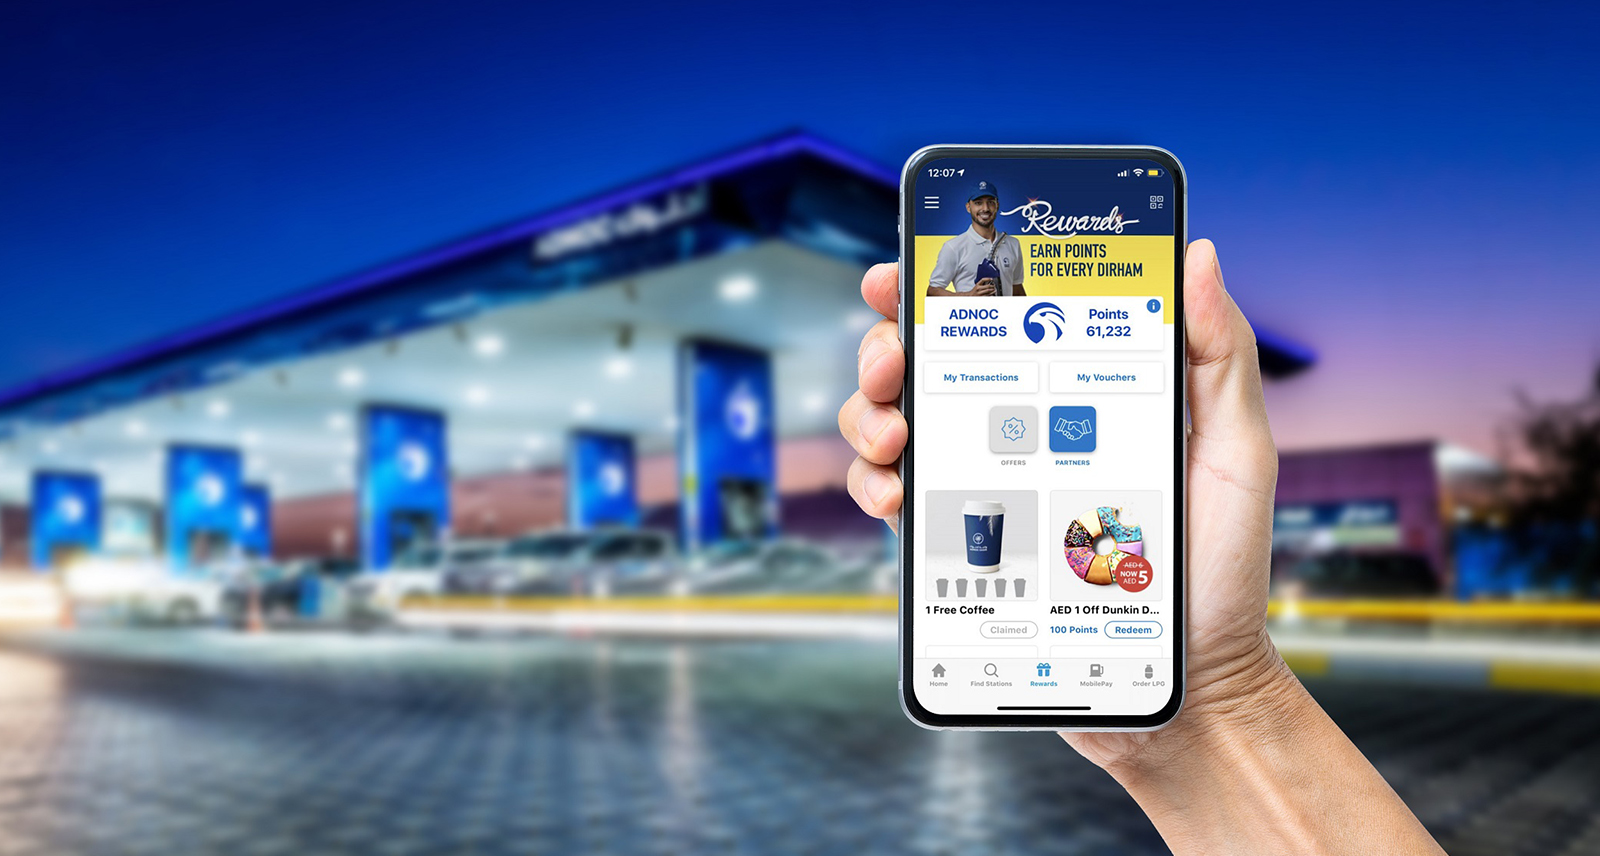 EARN POINTS WITH EVERY PURCHASE IN NEW-LOOK ADNOC REWARDS